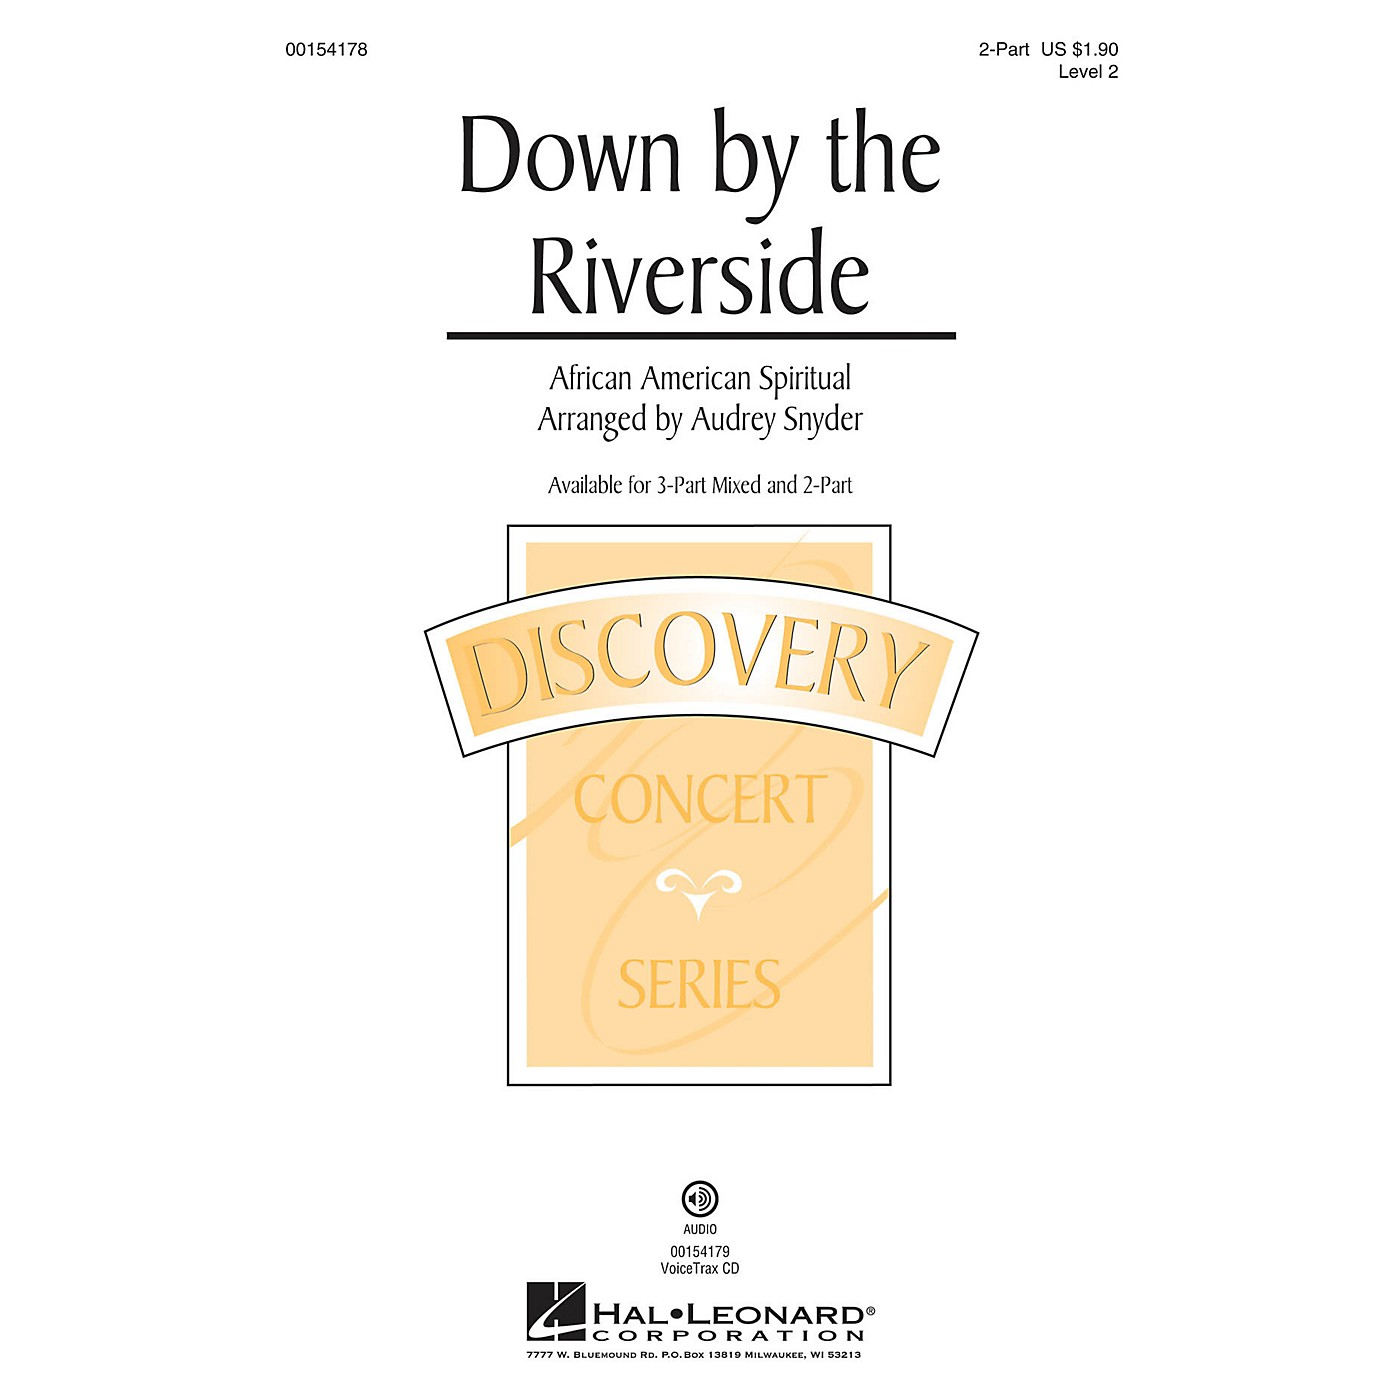 Hal Leonard Down by the Riverside 2-Part arranged by Audrey Snyder thumbnail